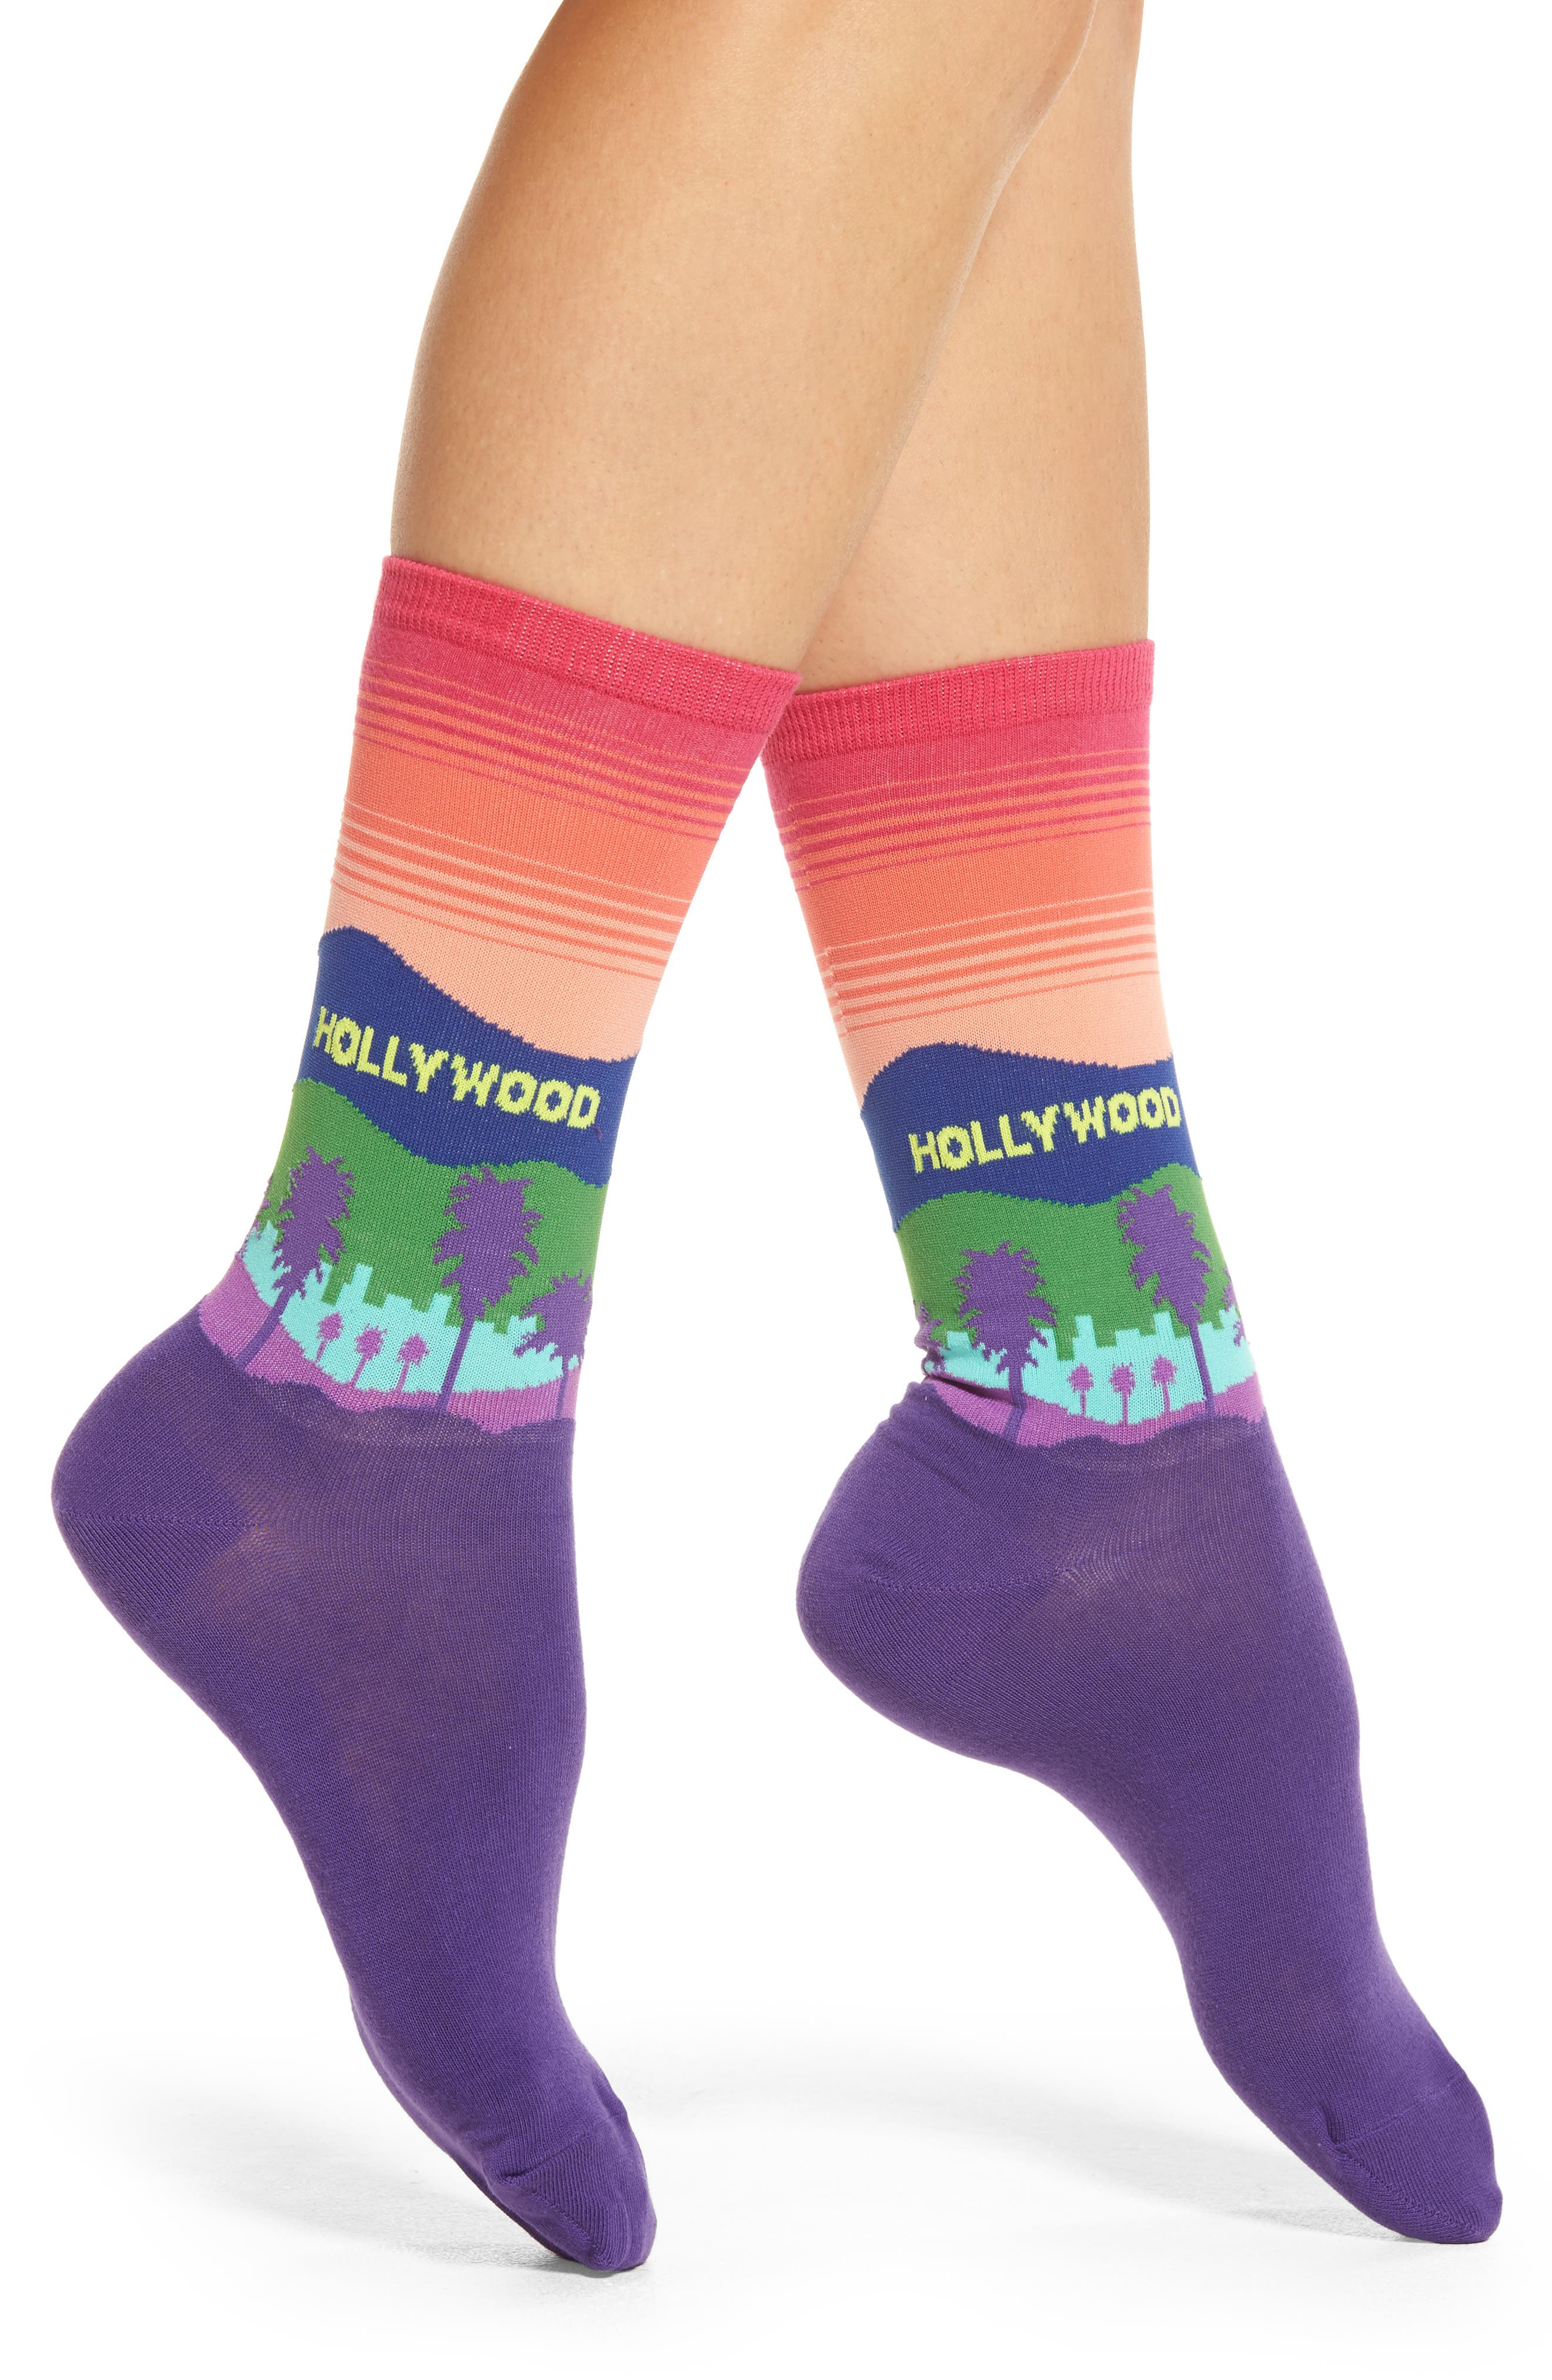 Alternate Image 1 Selected - Hot Sox Hollywood Crew Socks (3 or $15)